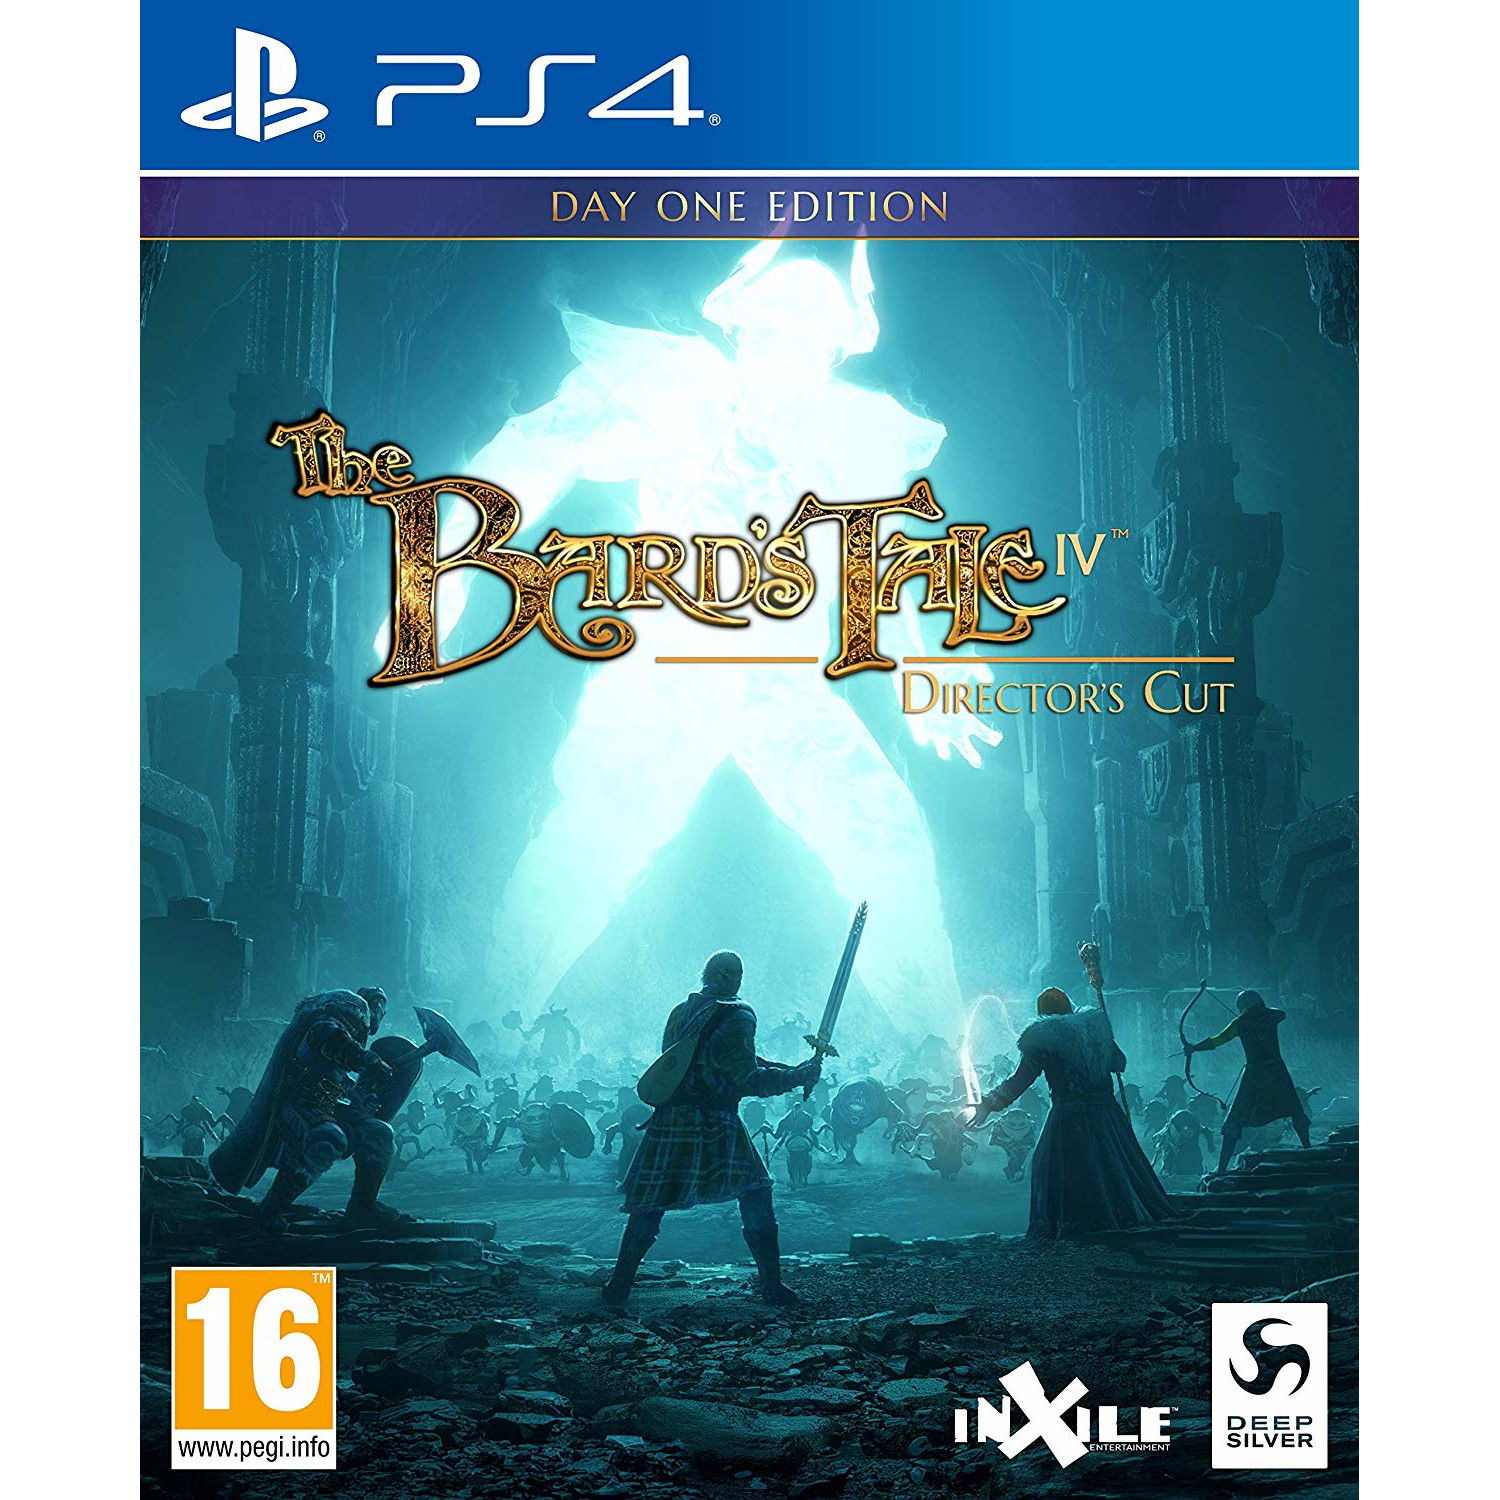 Joc The Bard's Tale IV: Directors Cut Day One Edition (EU) Pentru PlayStation 4 0